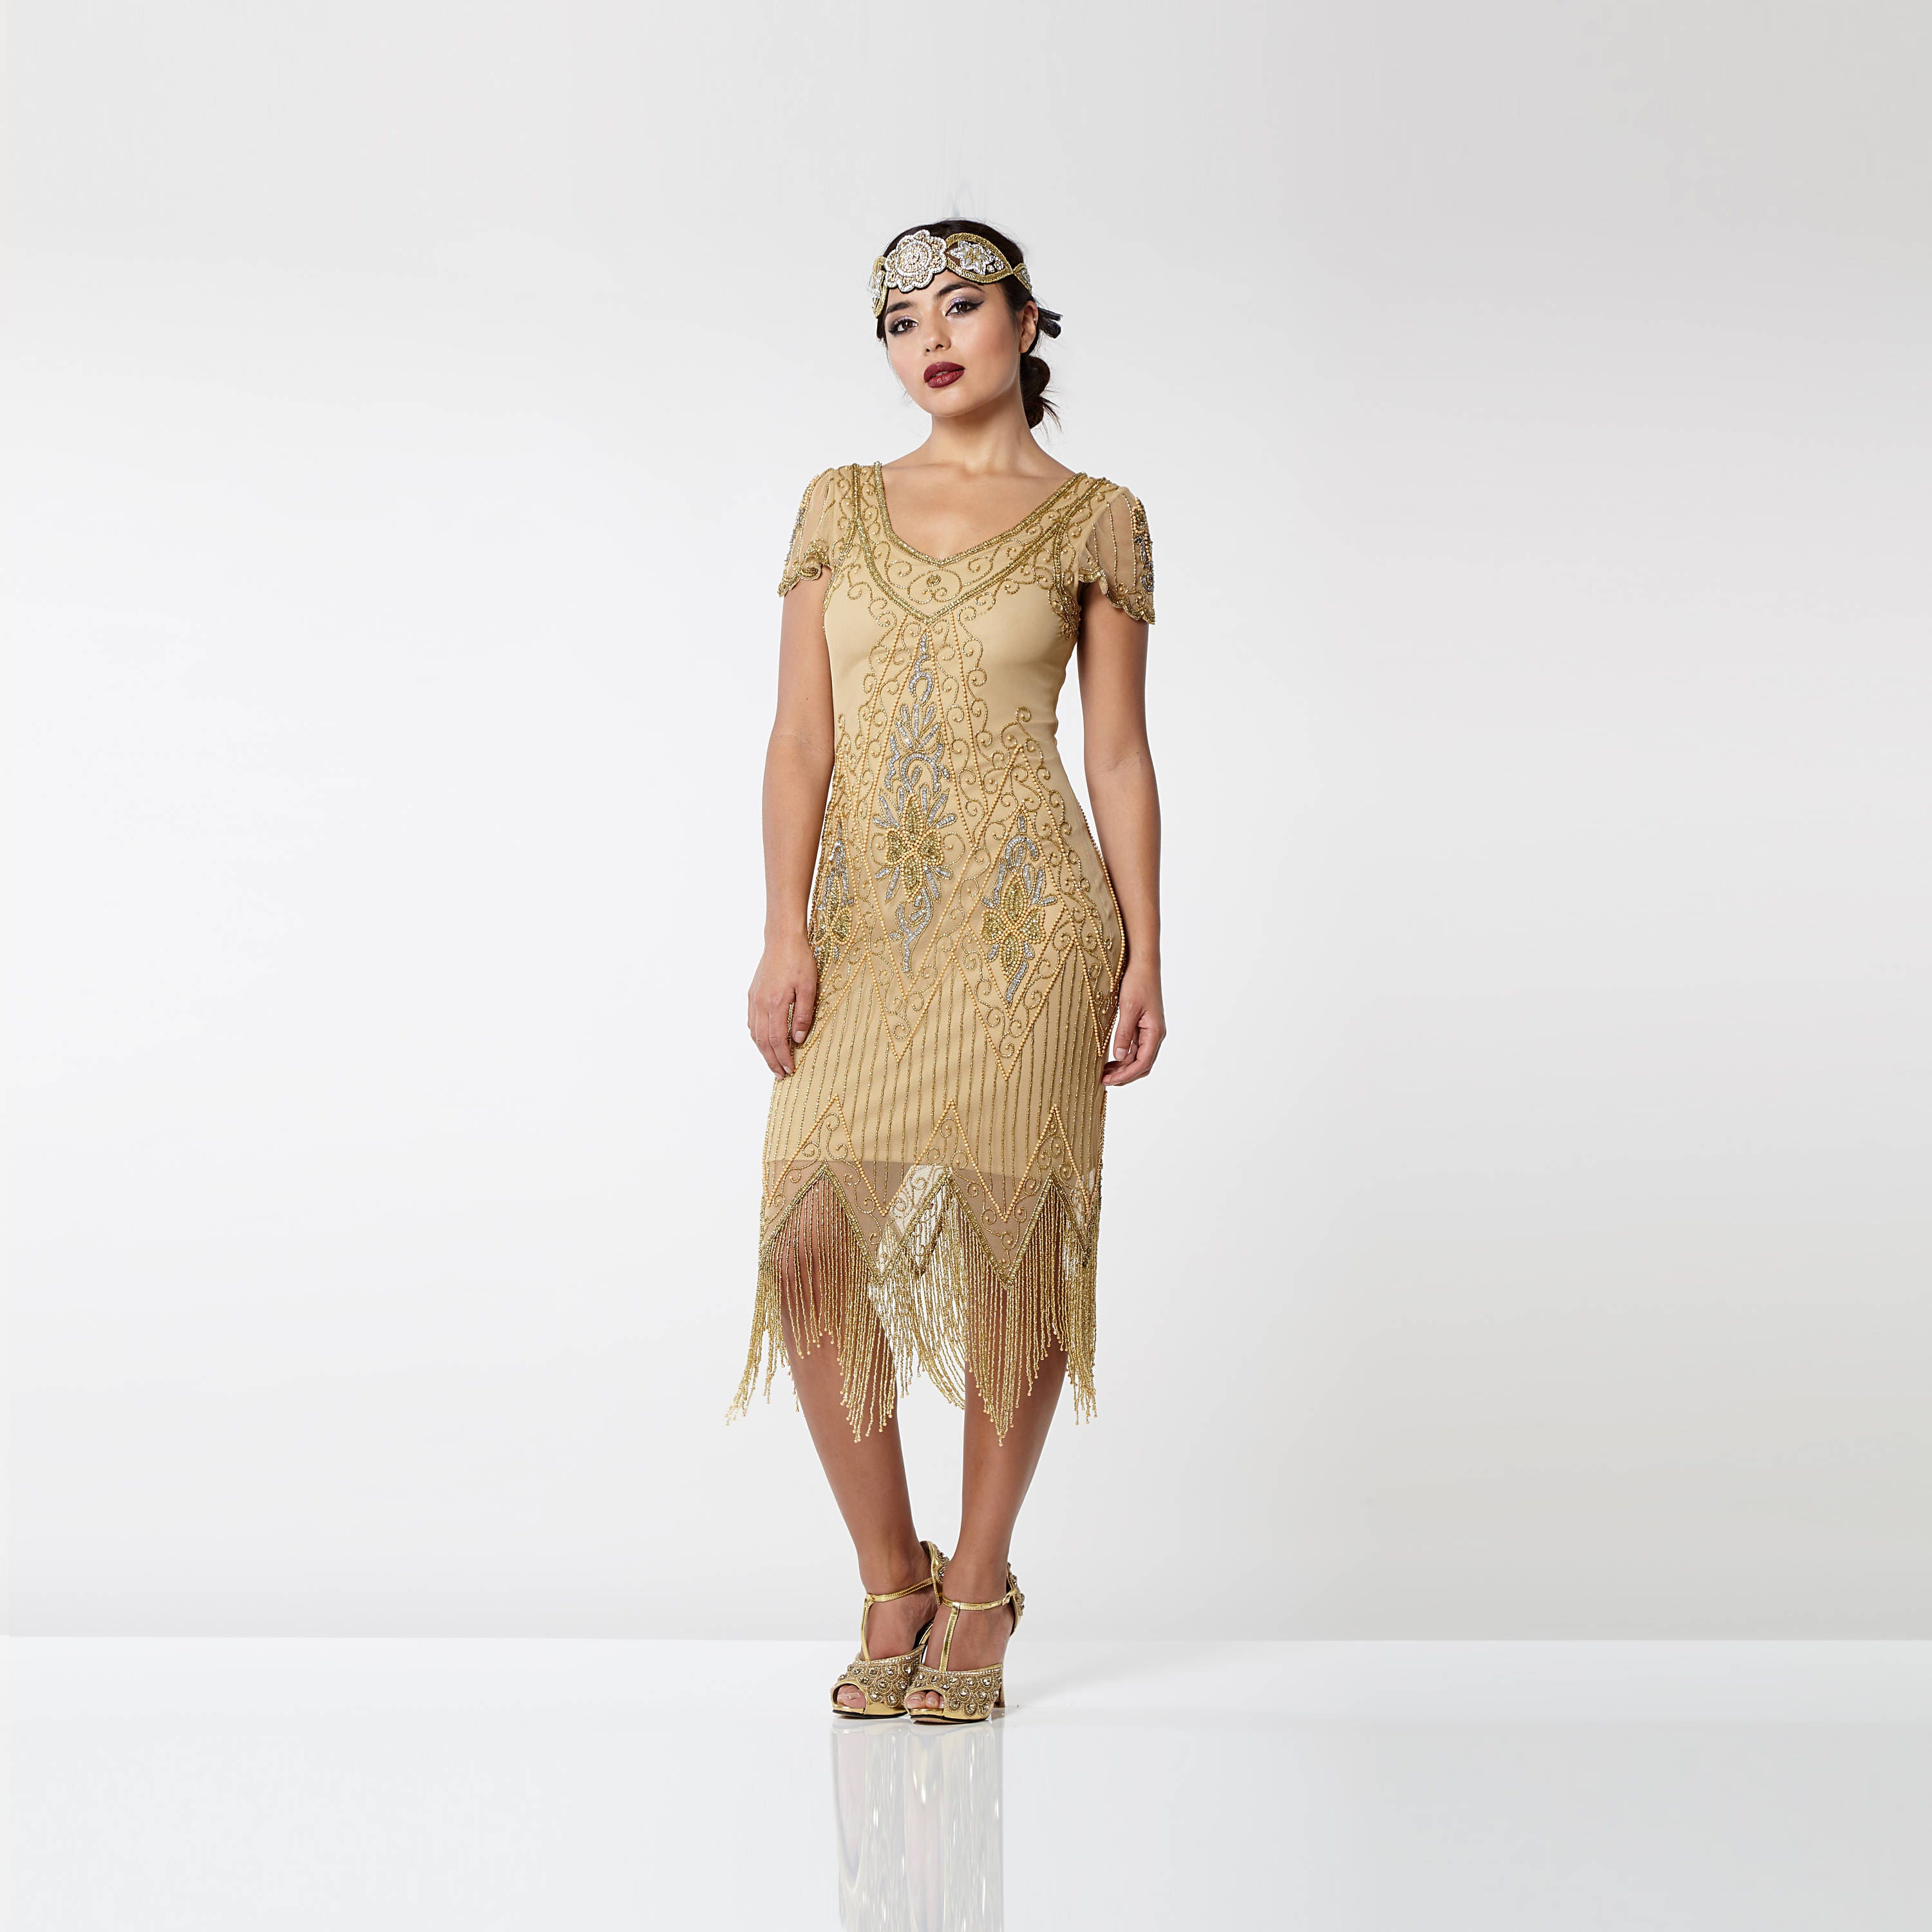 Plus Size Annette Gold Vintage 20s Flapper Great Gatsby